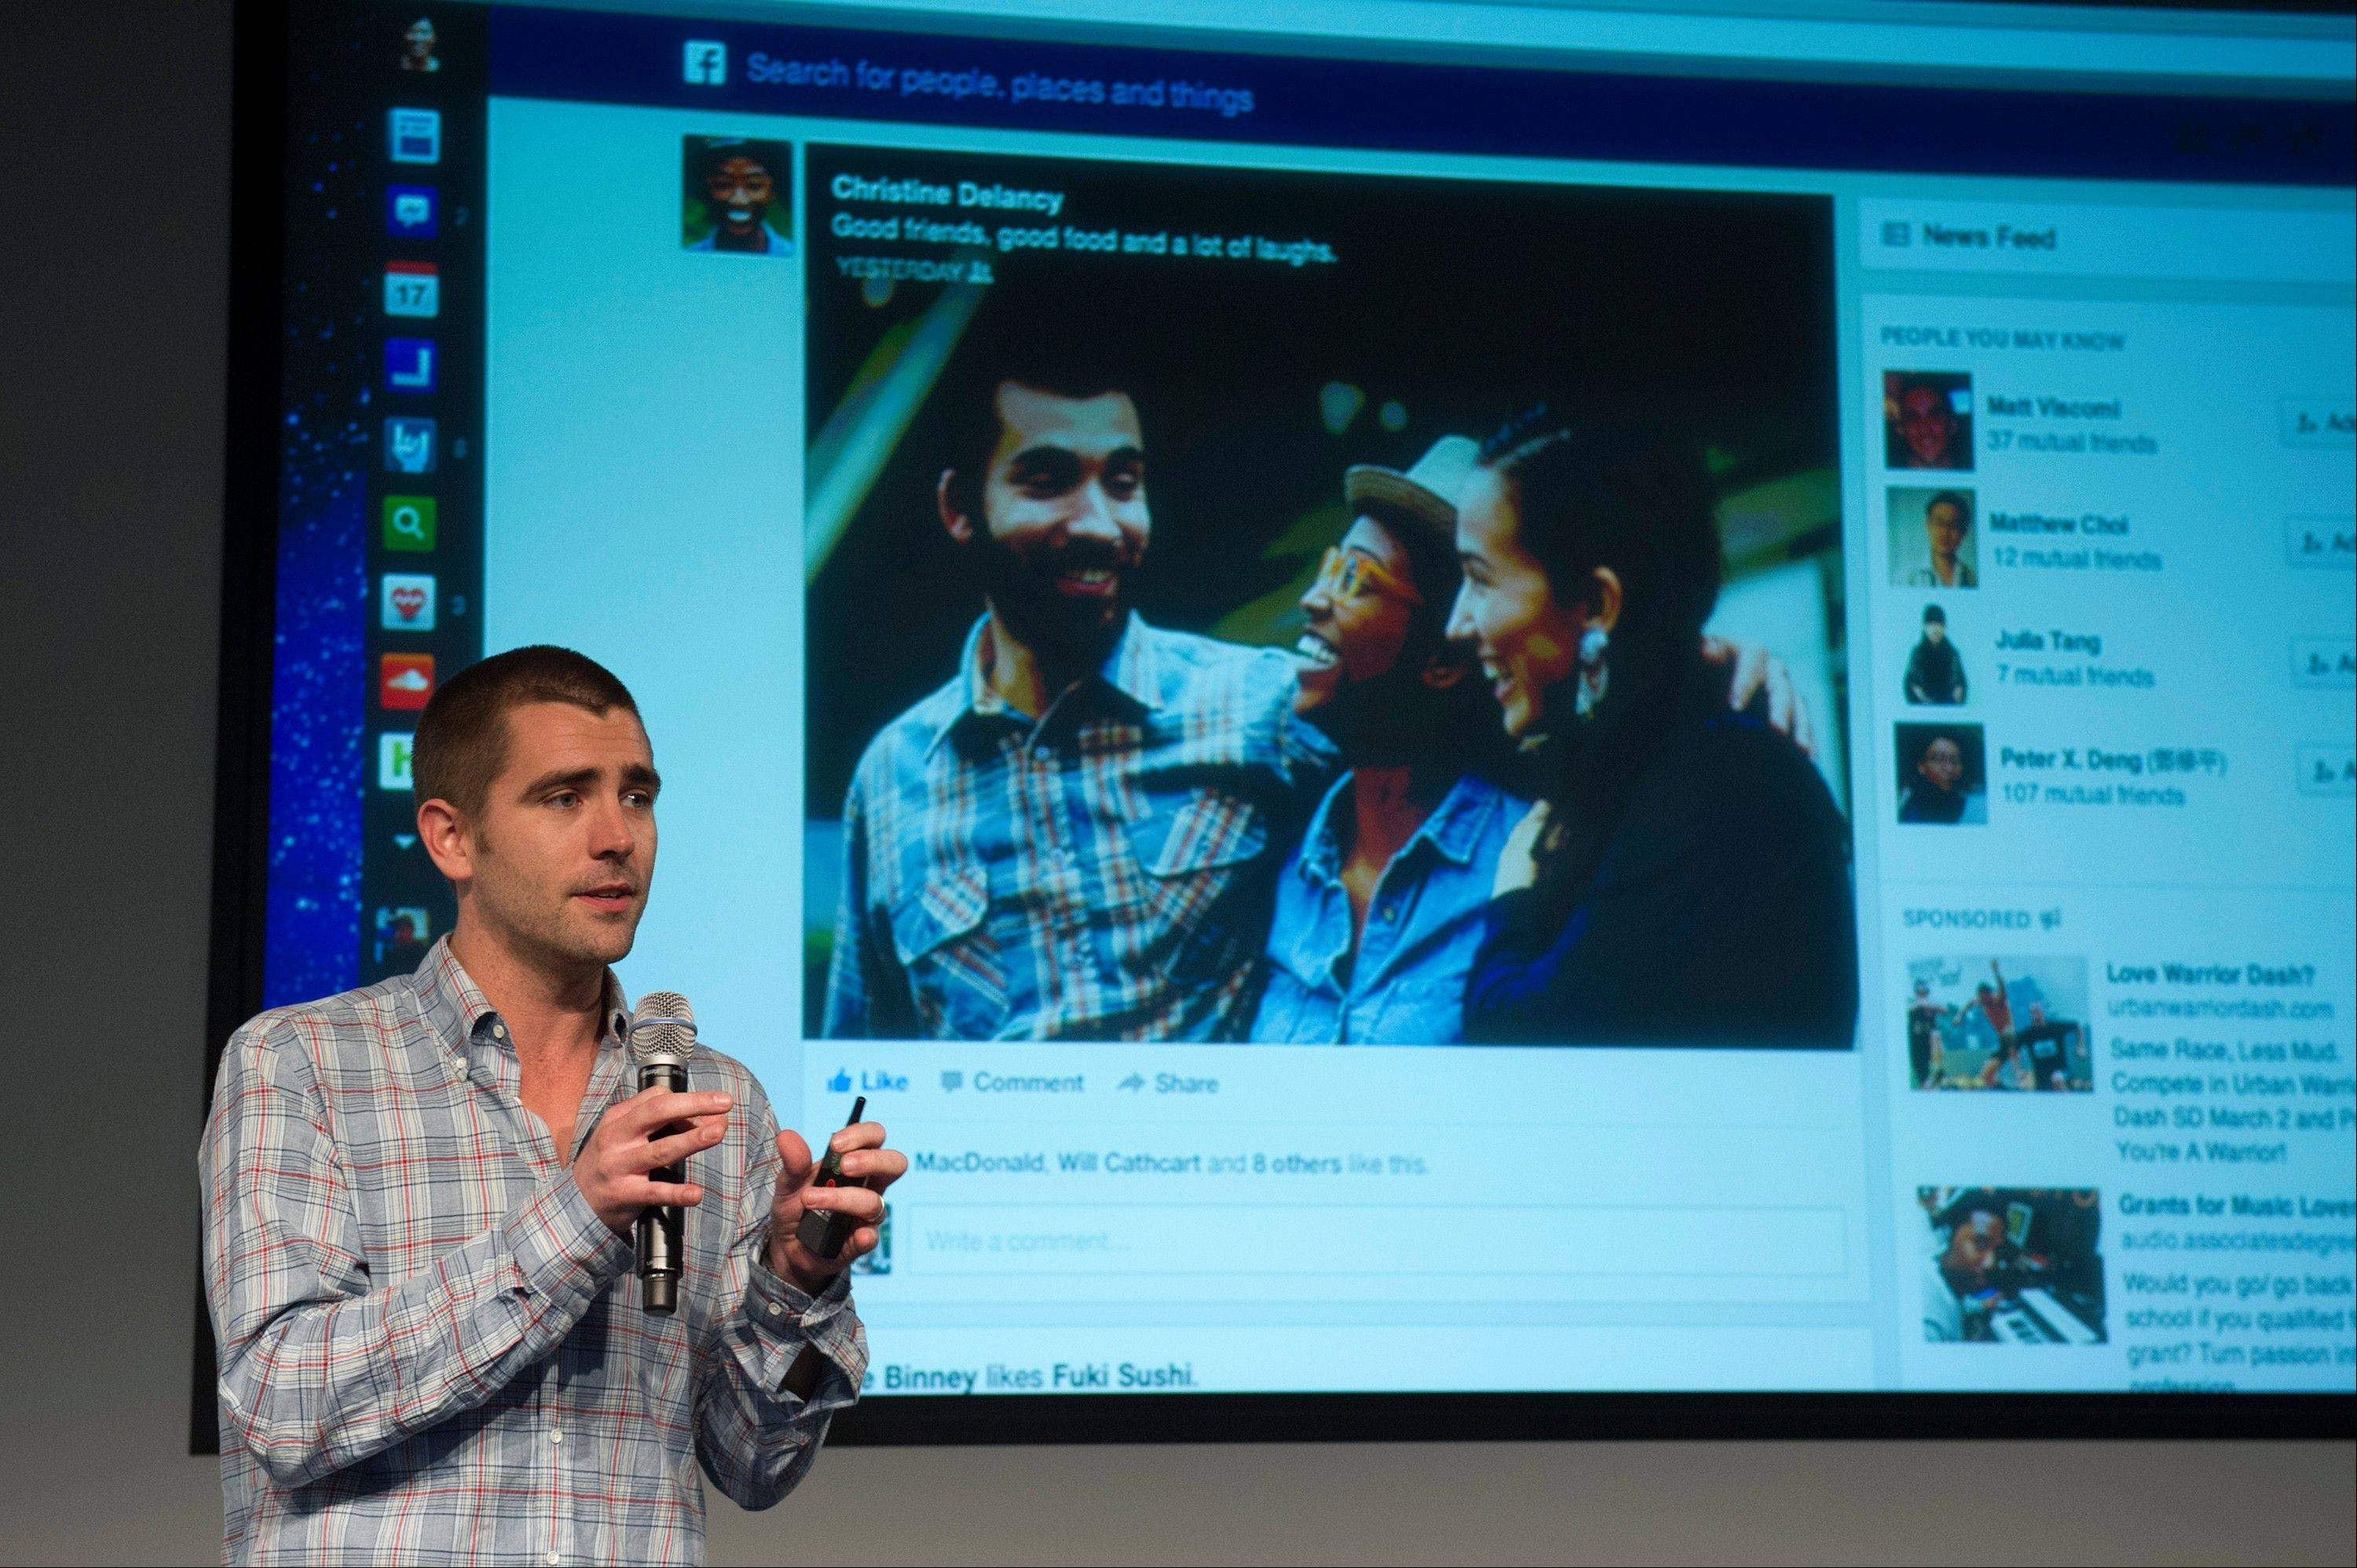 Chris Cox, vice president of product for Facebook Inc., speaks during an event at the company's headquarters in Menlo Park, California, U.S., on Thursday, March 7, 2013. Mark Zuckerberg, chief executive officer and founder of Facebook Inc., discussed the social-network site's upgraded News Feed which includes bigger photos, information sorted into topics and a more consistent design across devices. Photographer: David Paul Morris/Bloomberg *** Local Caption *** Chris Cox